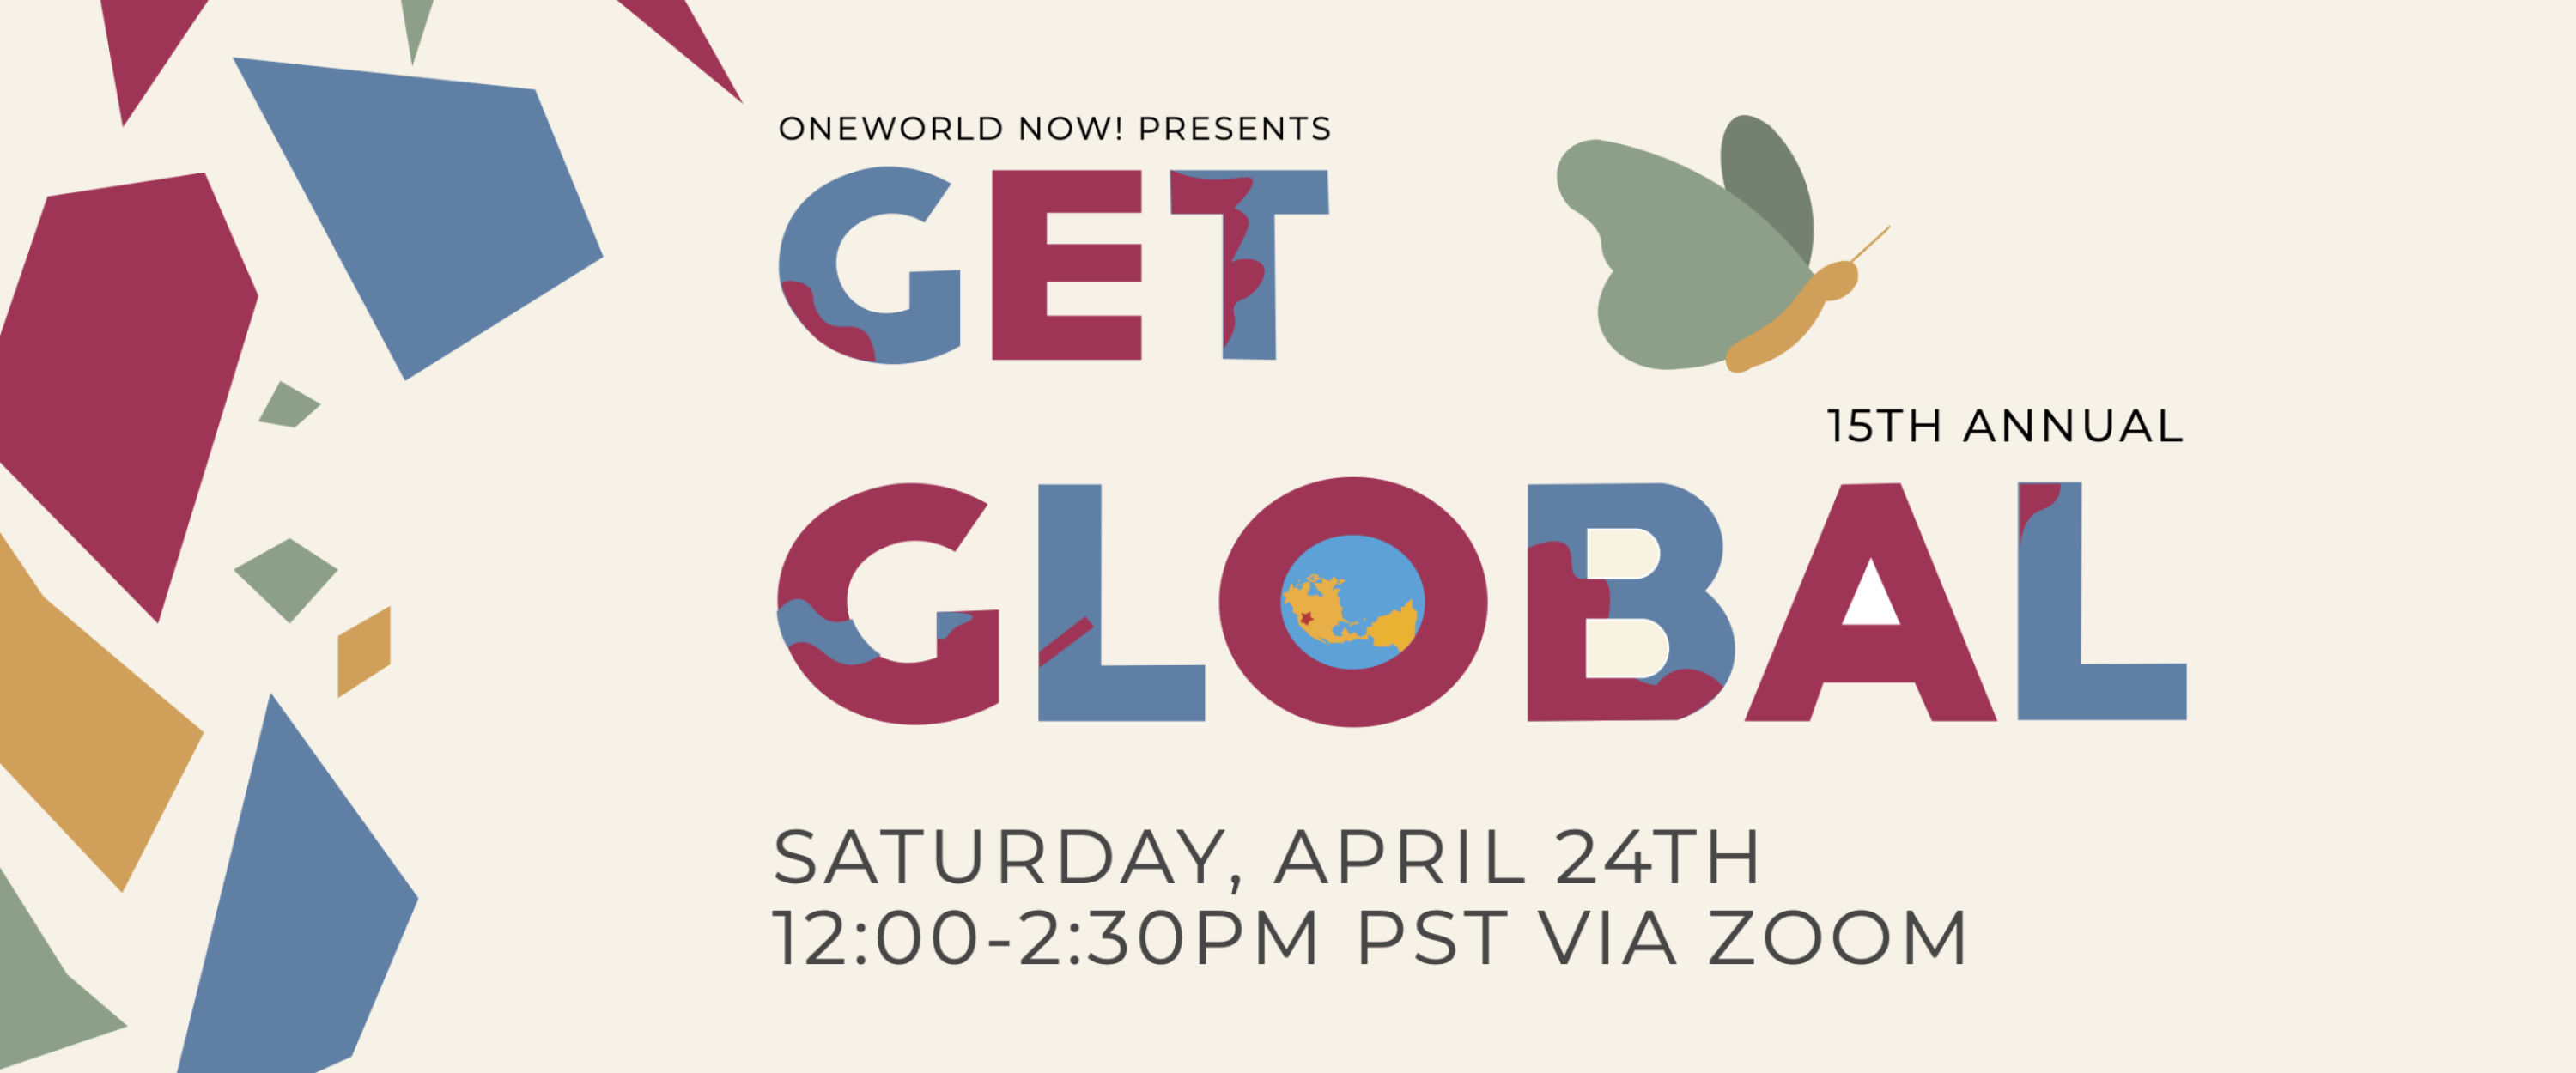 Get Global Virtual Event on Saturday April 24 at 12:00 pm